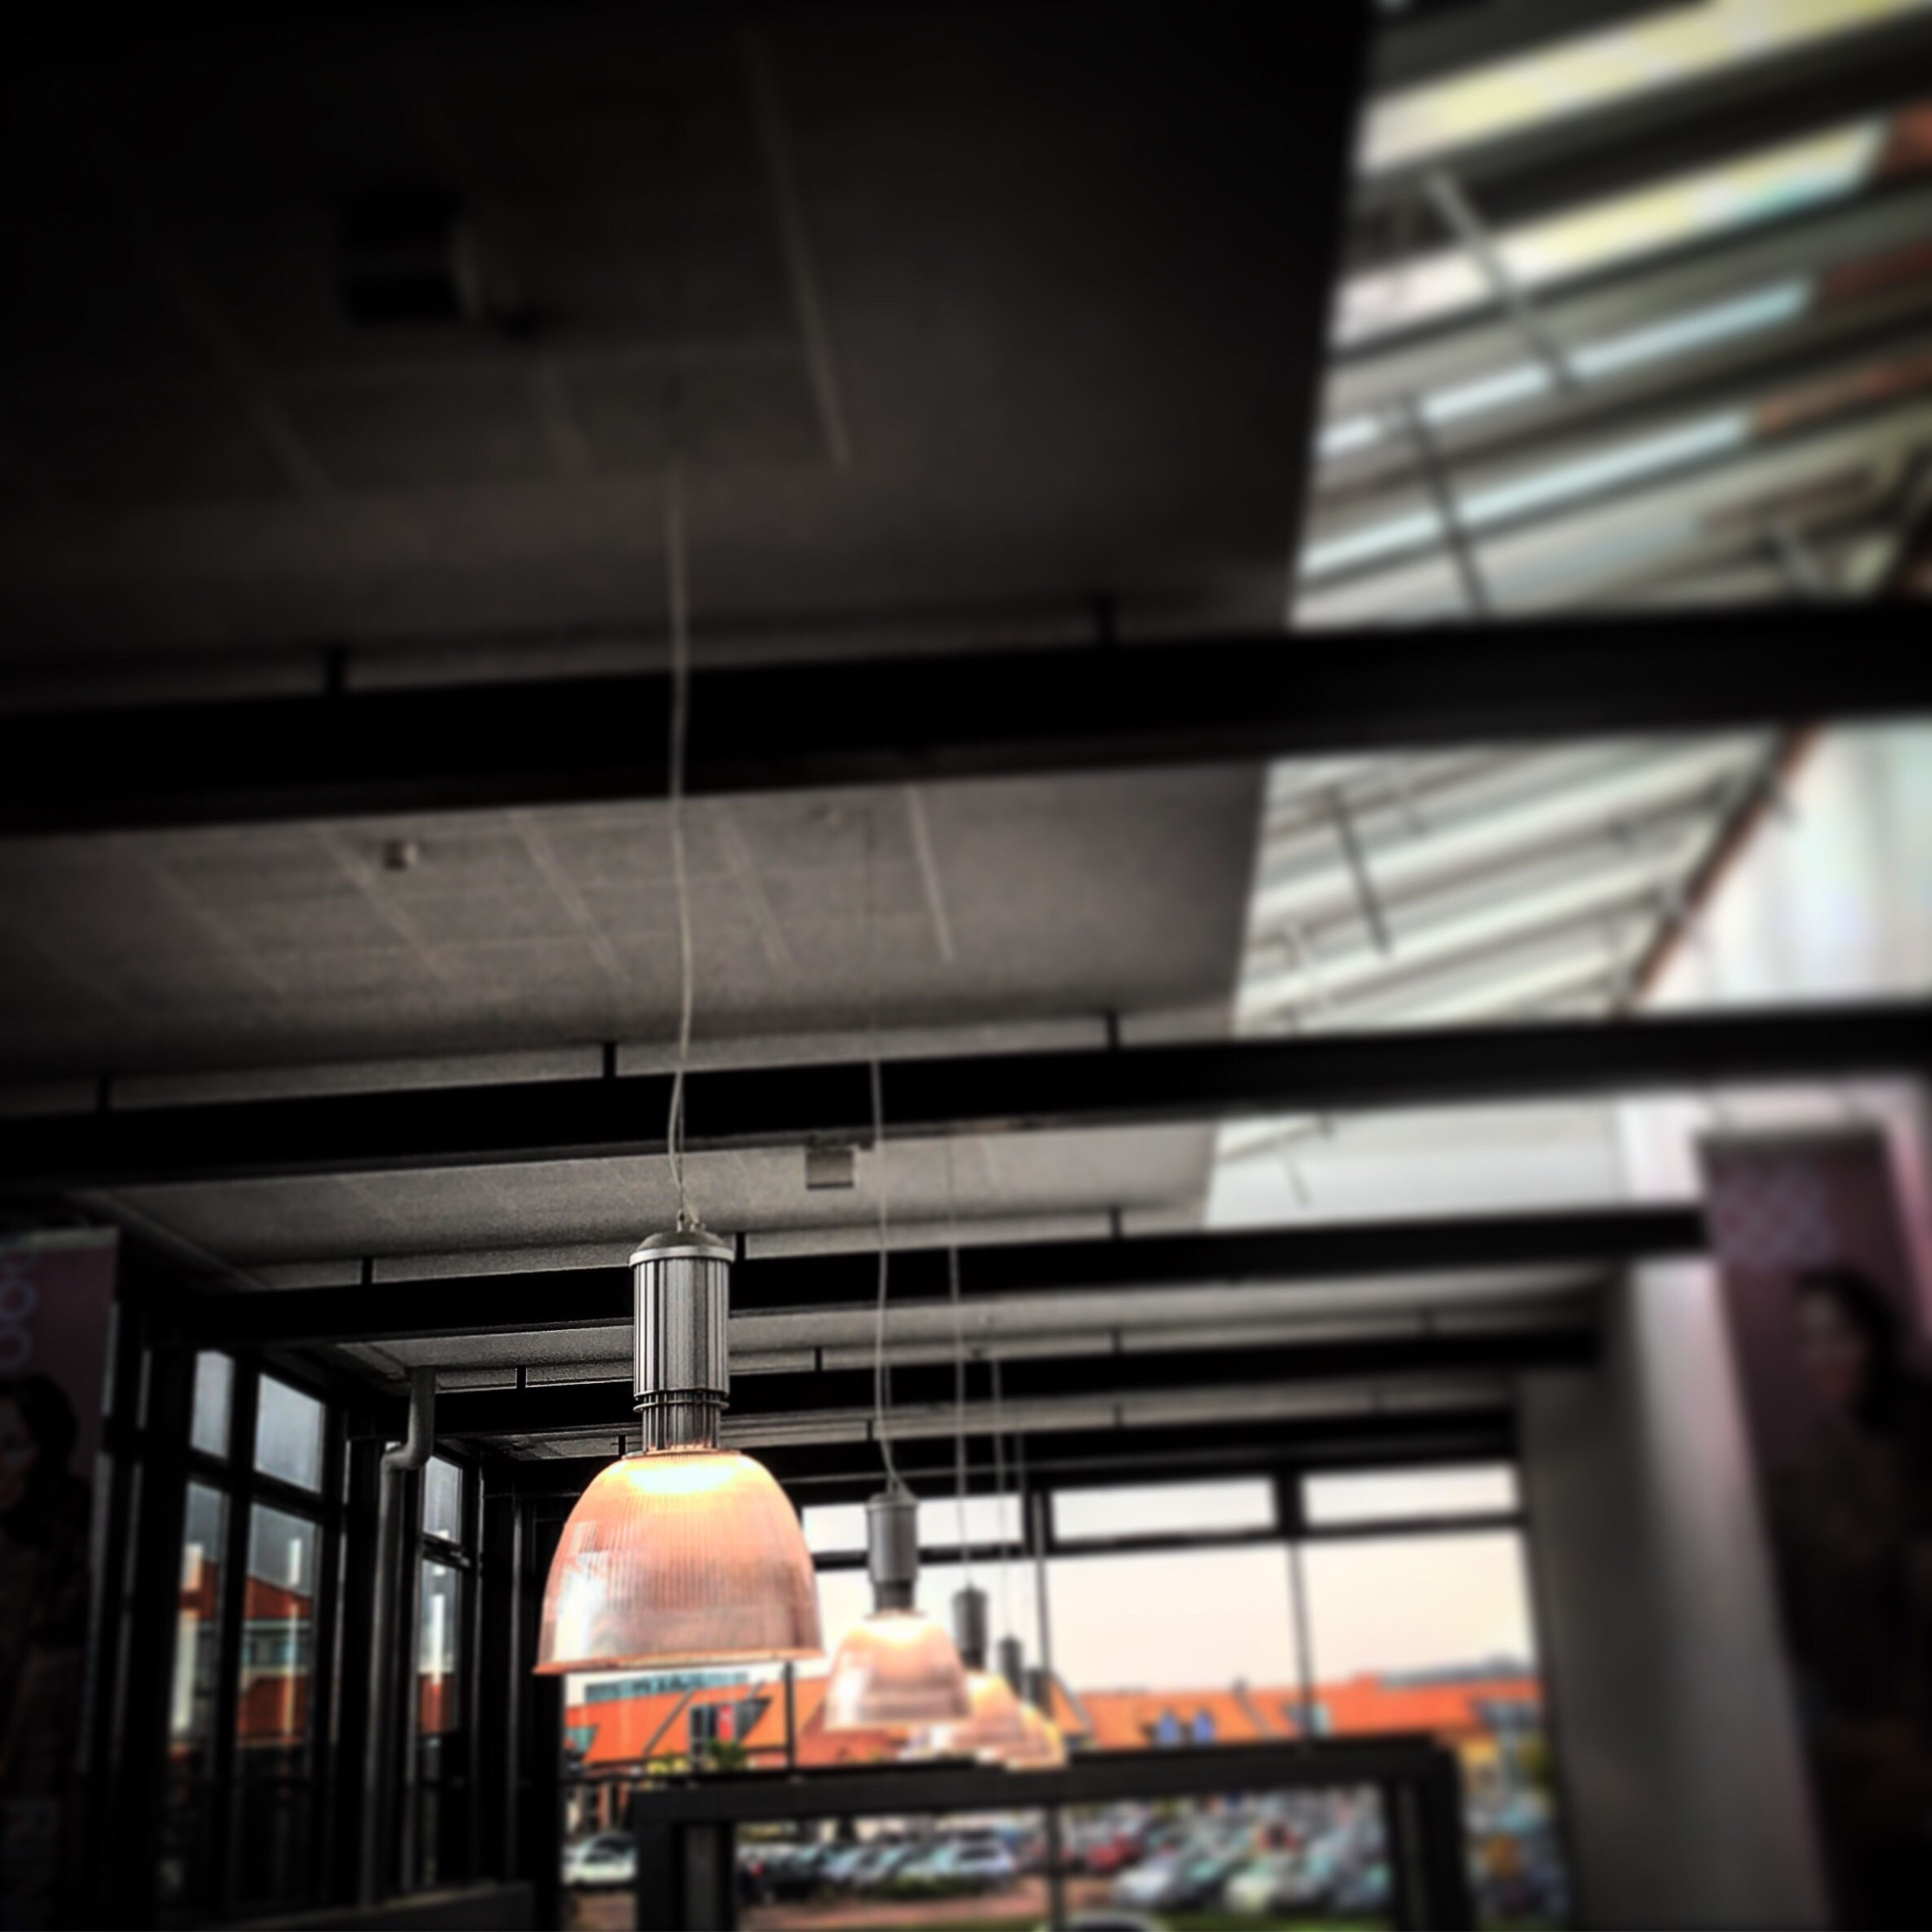 indoors, ceiling, low angle view, hanging, day, focus on foreground, interior, no people, journey